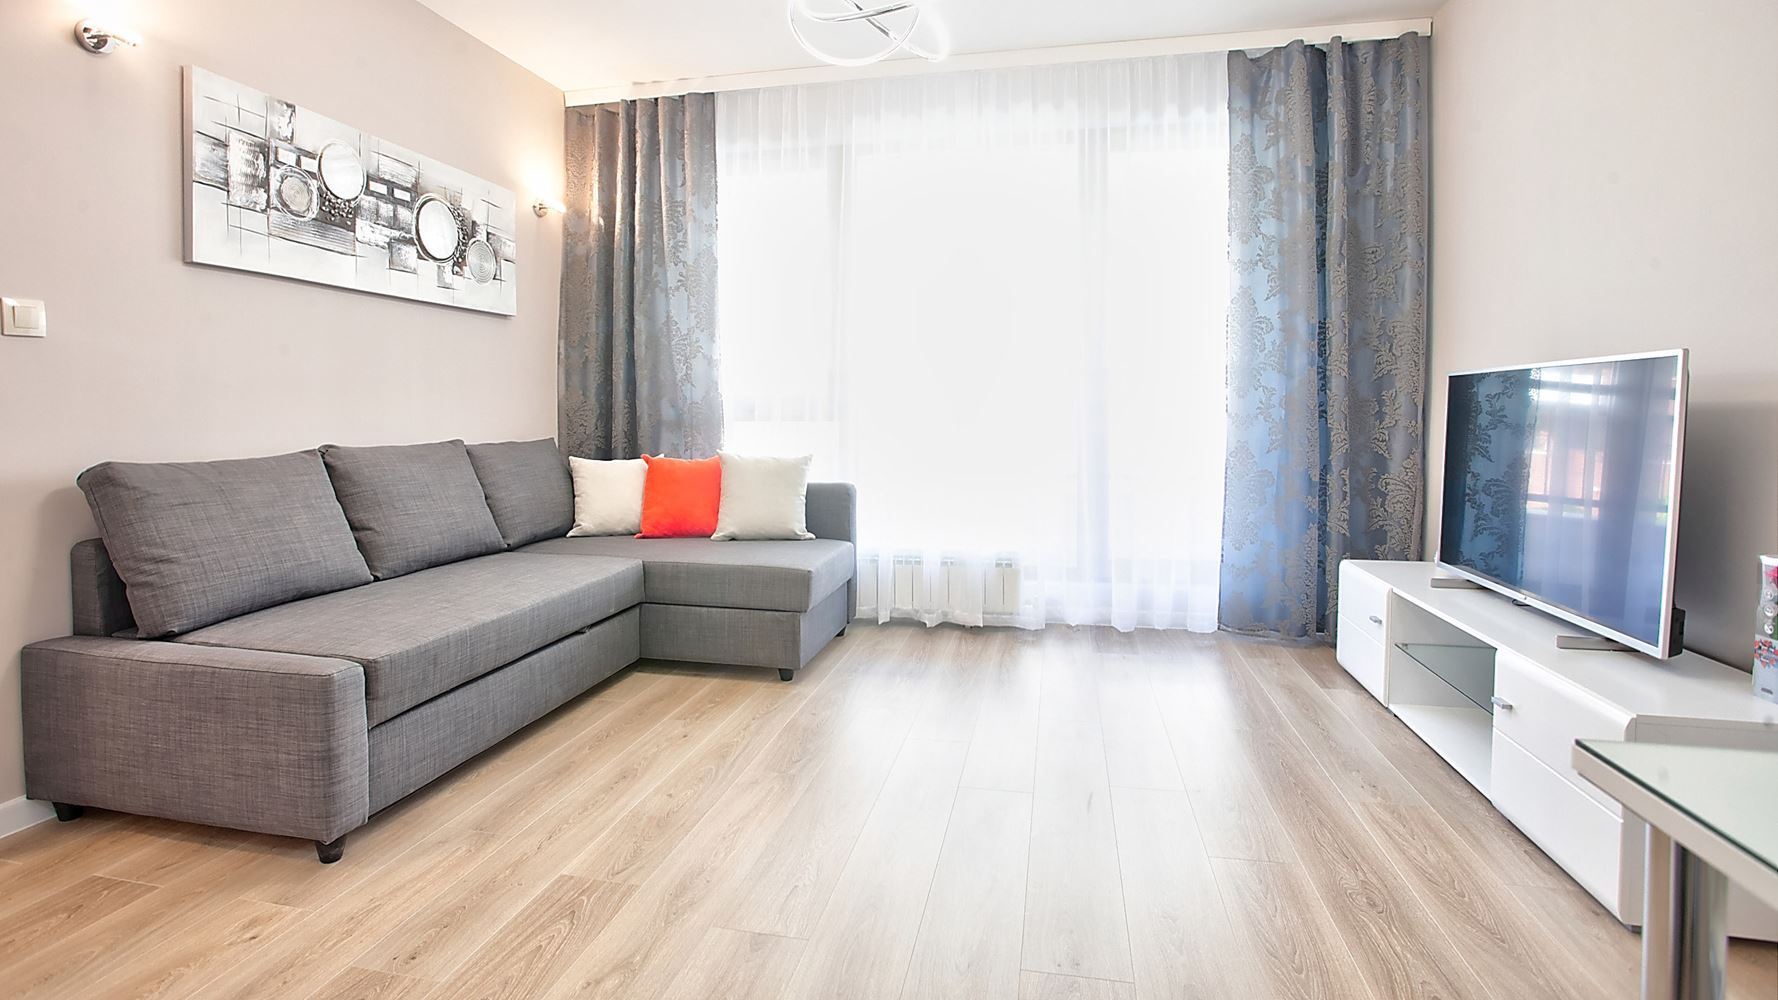 1-bedroom Apartment for Rent, Dianabad